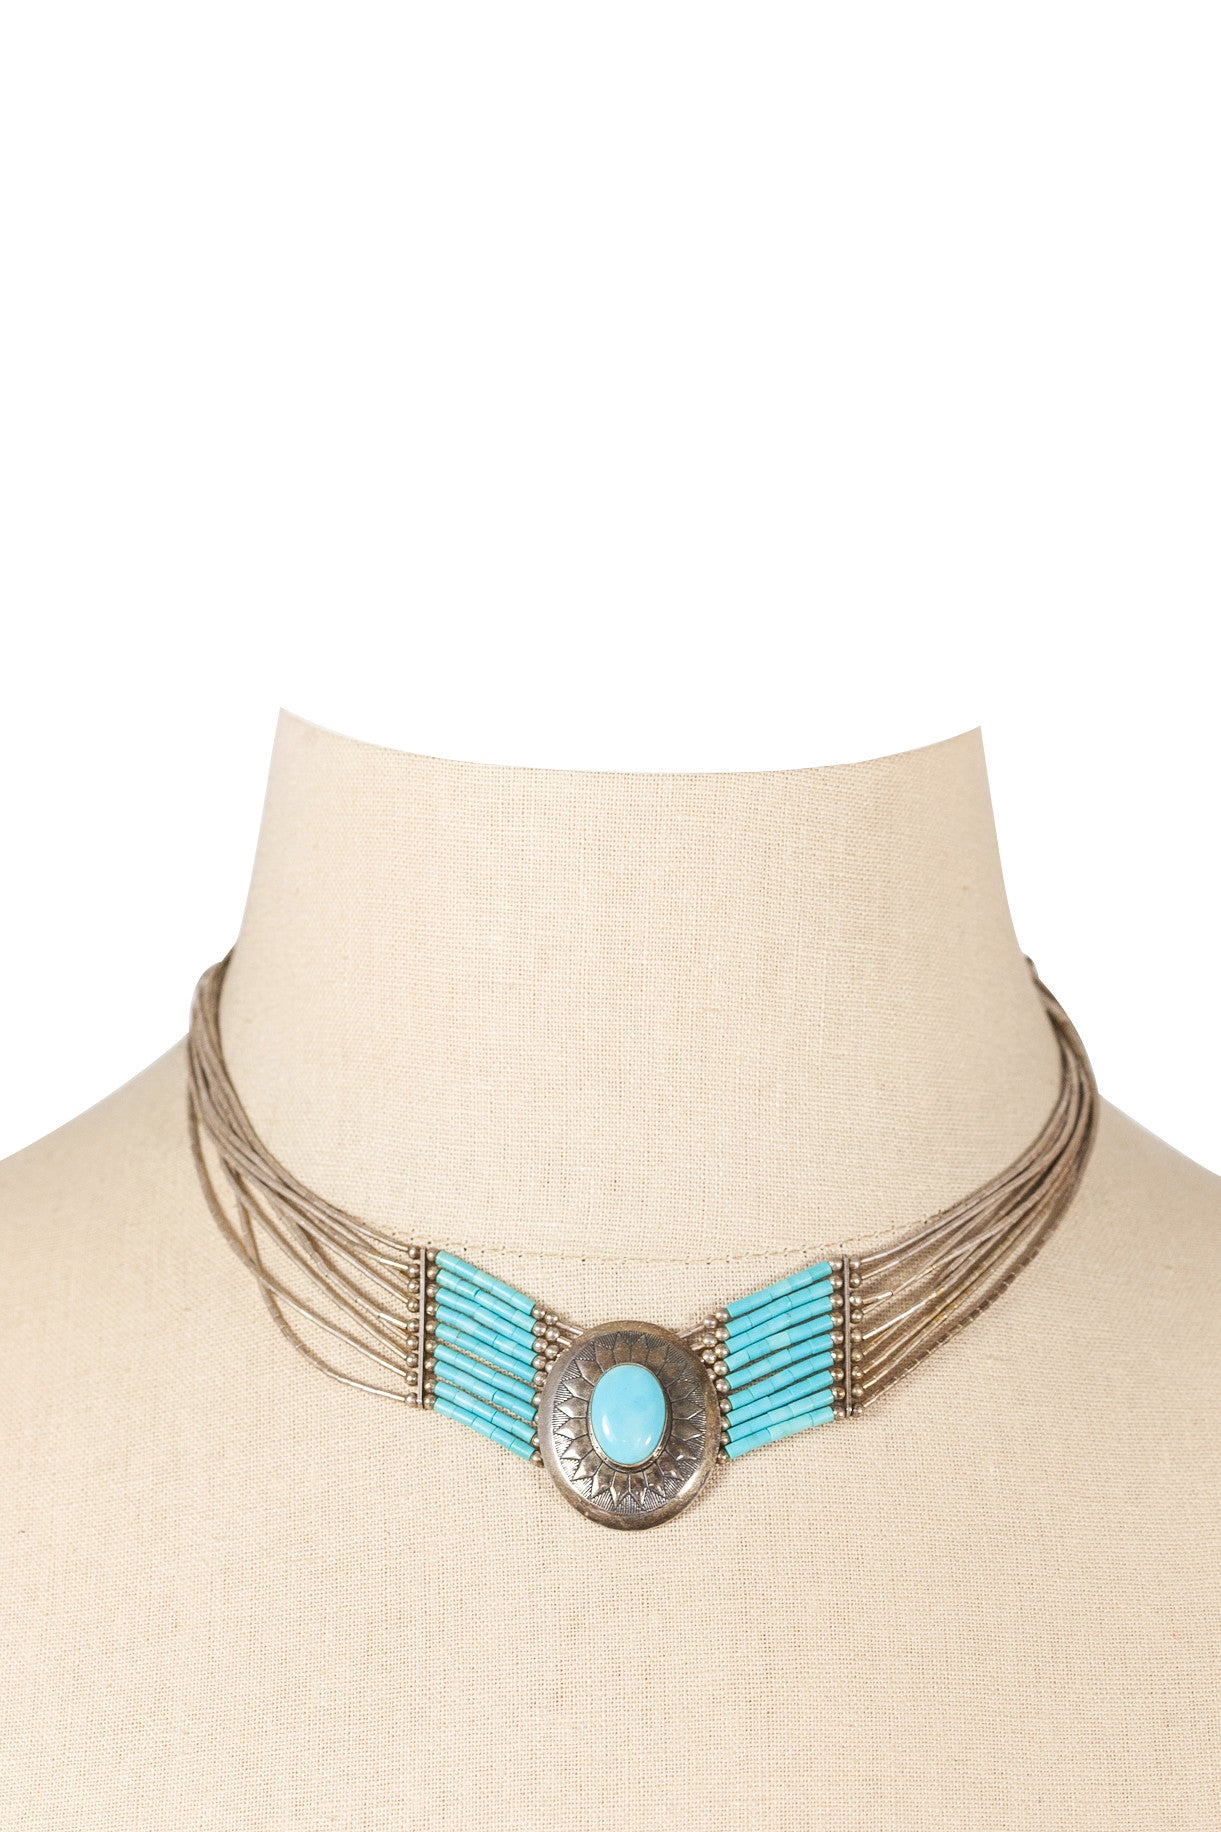 60's__Vintage__Turquoise Choker Necklace